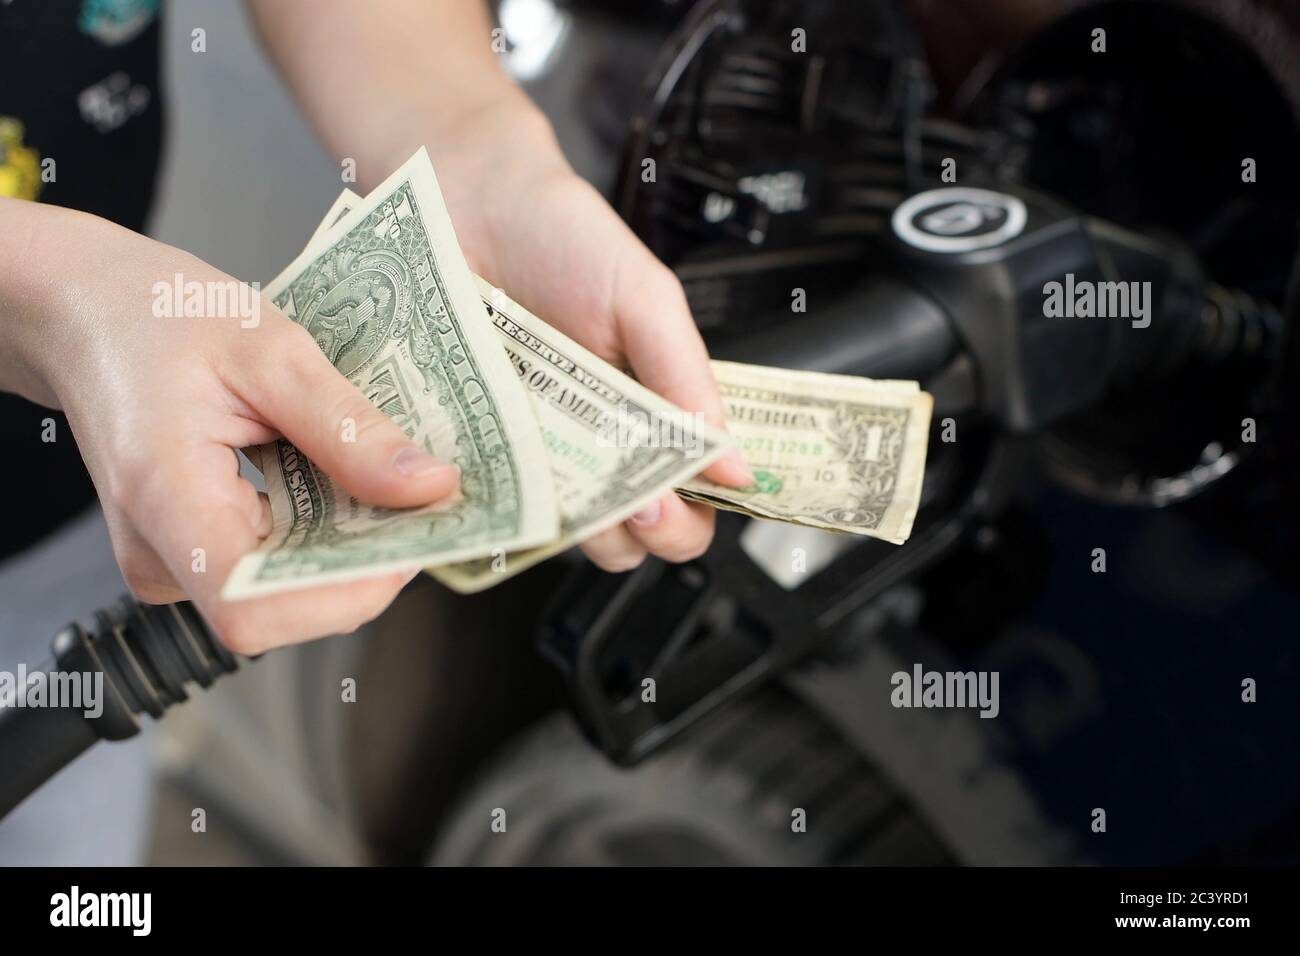 hands counts crumpled dollar bills against the background of fueling car Stock Photo